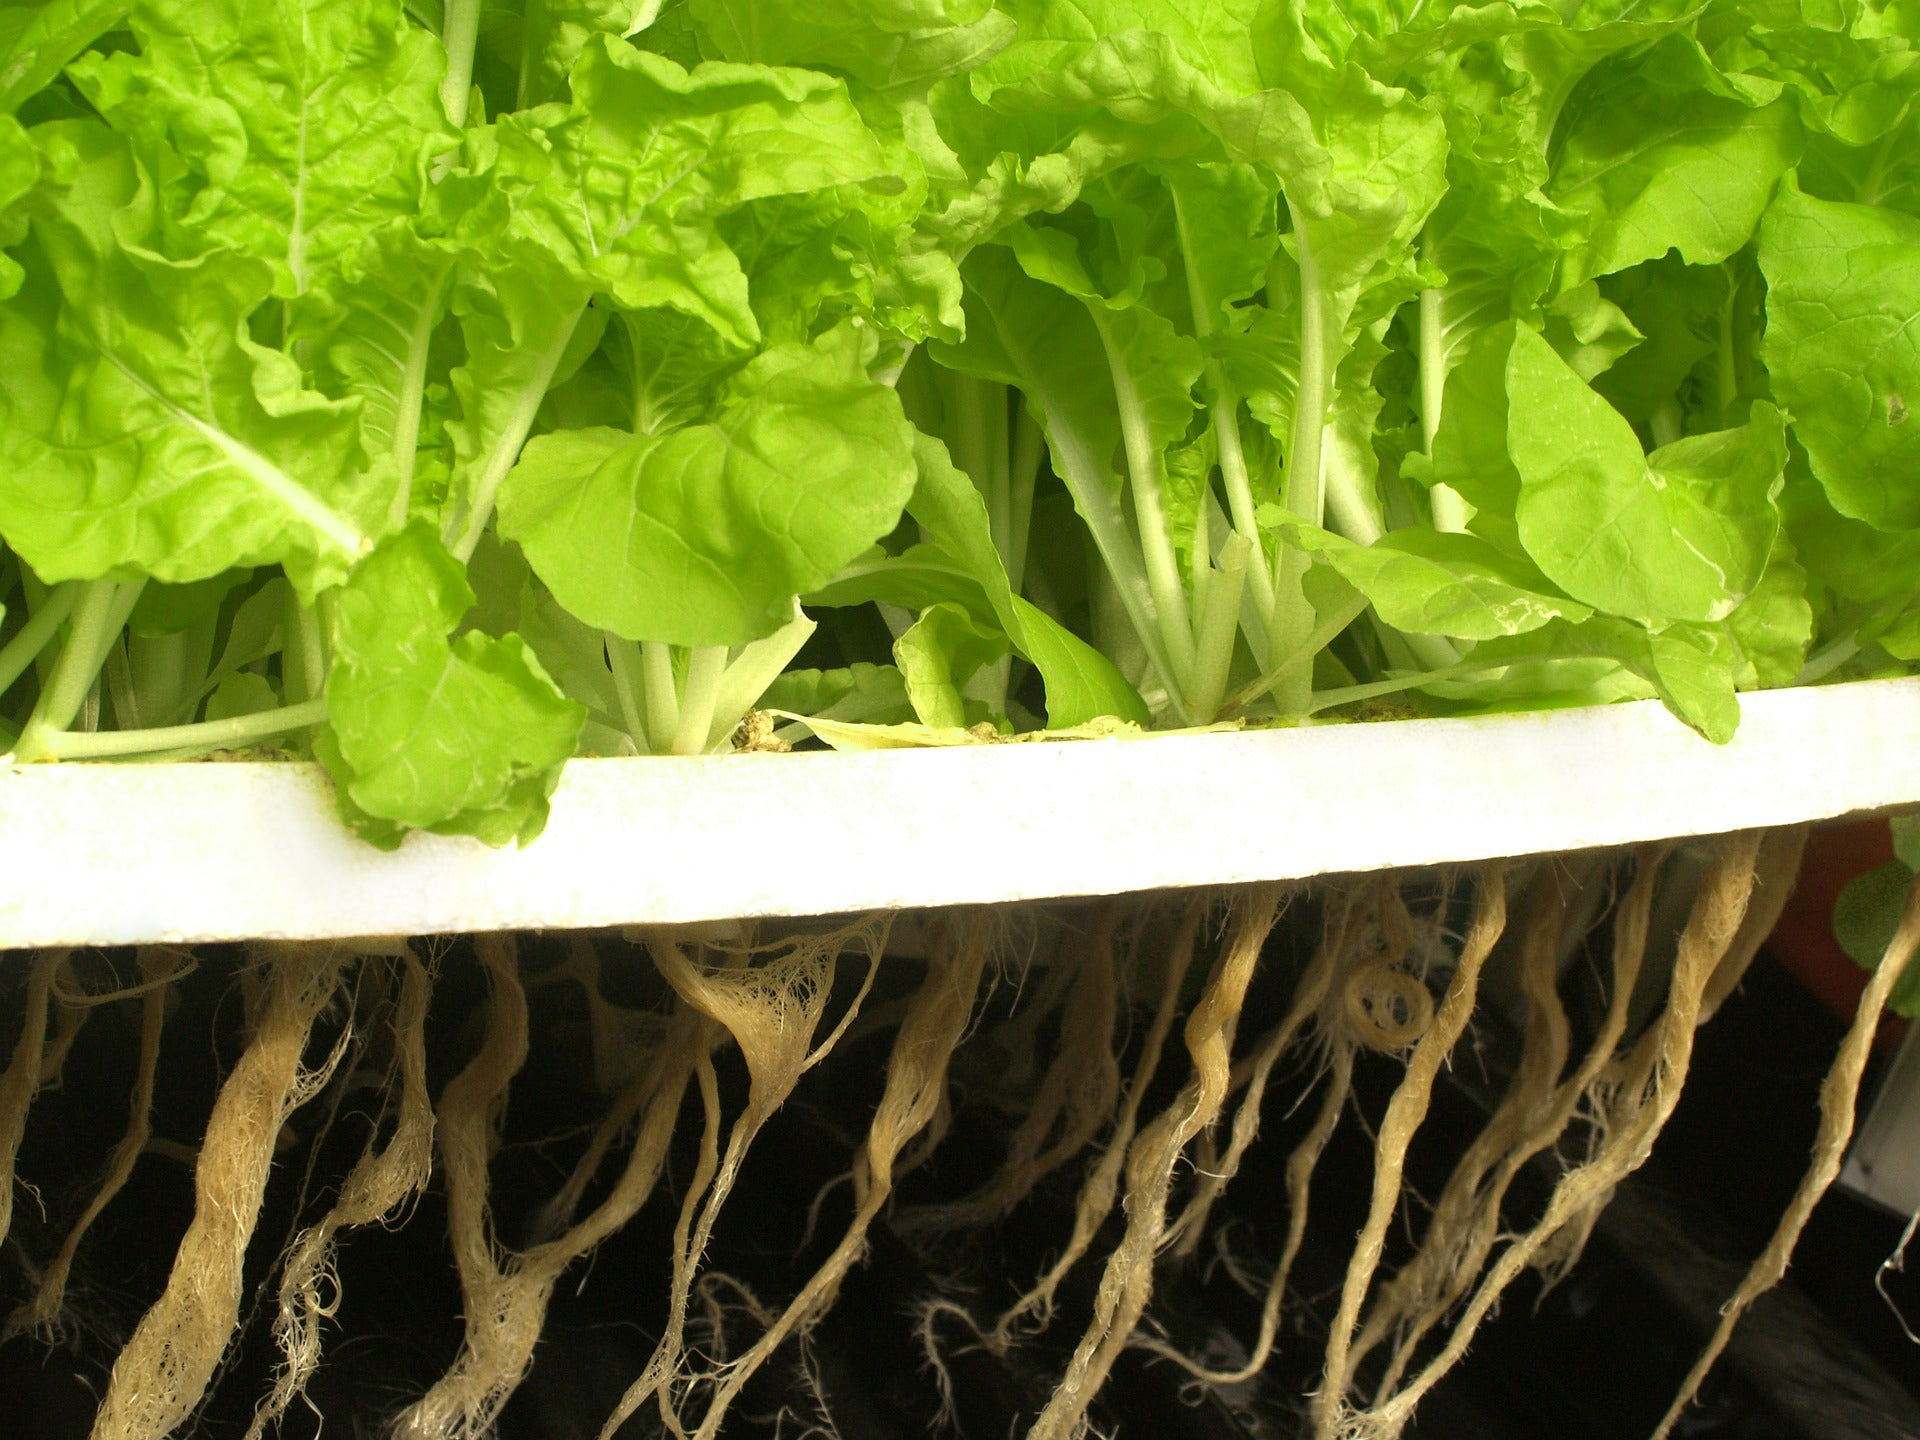 Roots of lettuce growing from a hydroponics solution